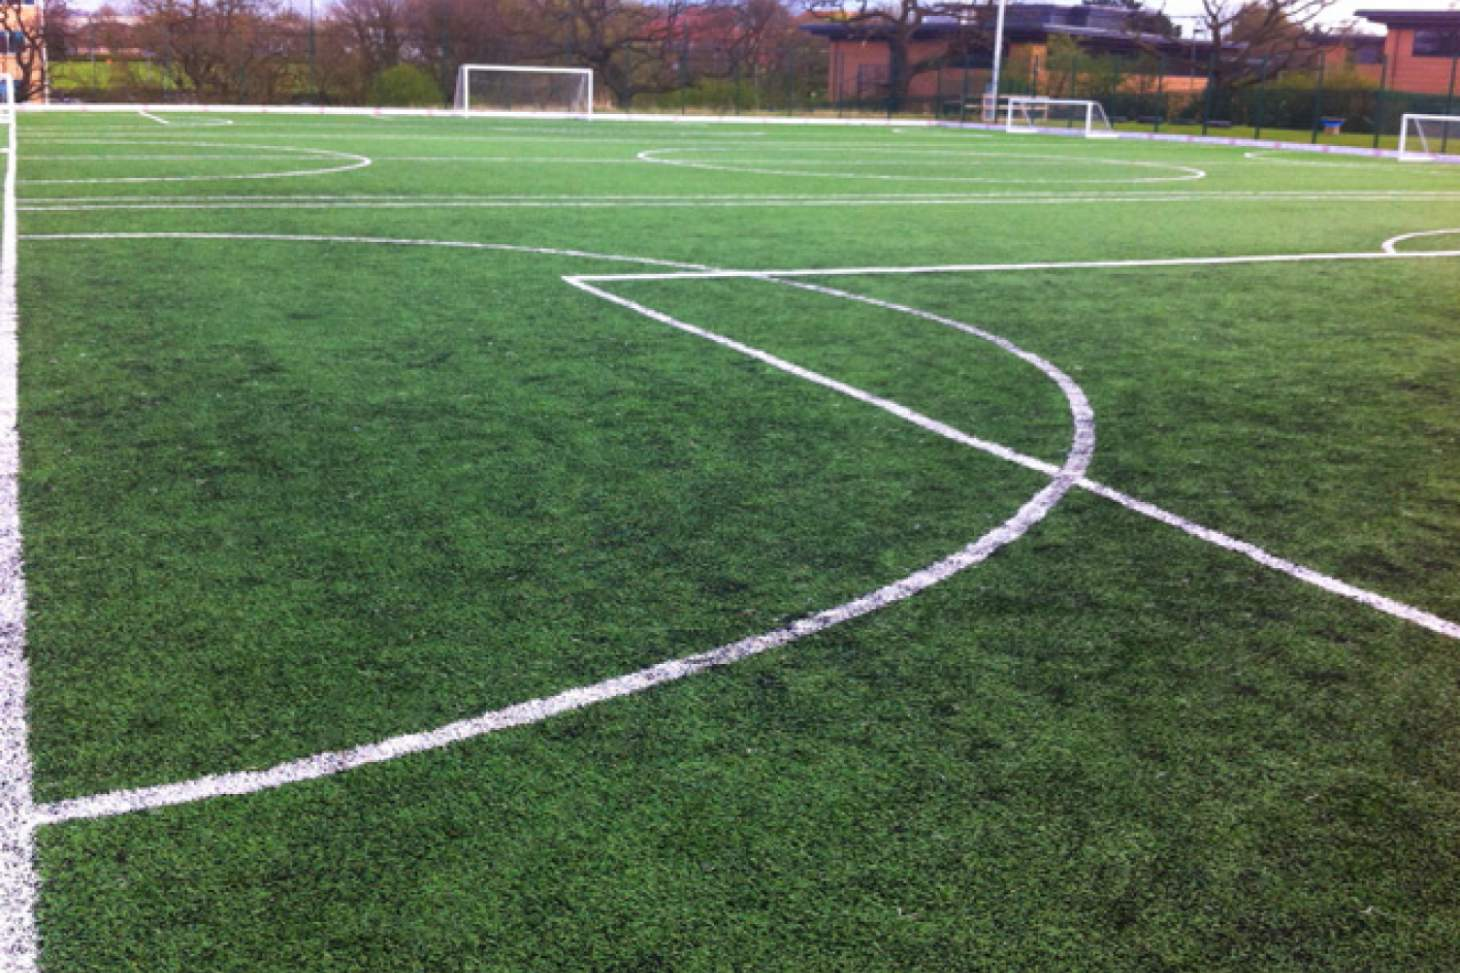 South Manchester Sports Club 7 a side | 3G Astroturf football pitch